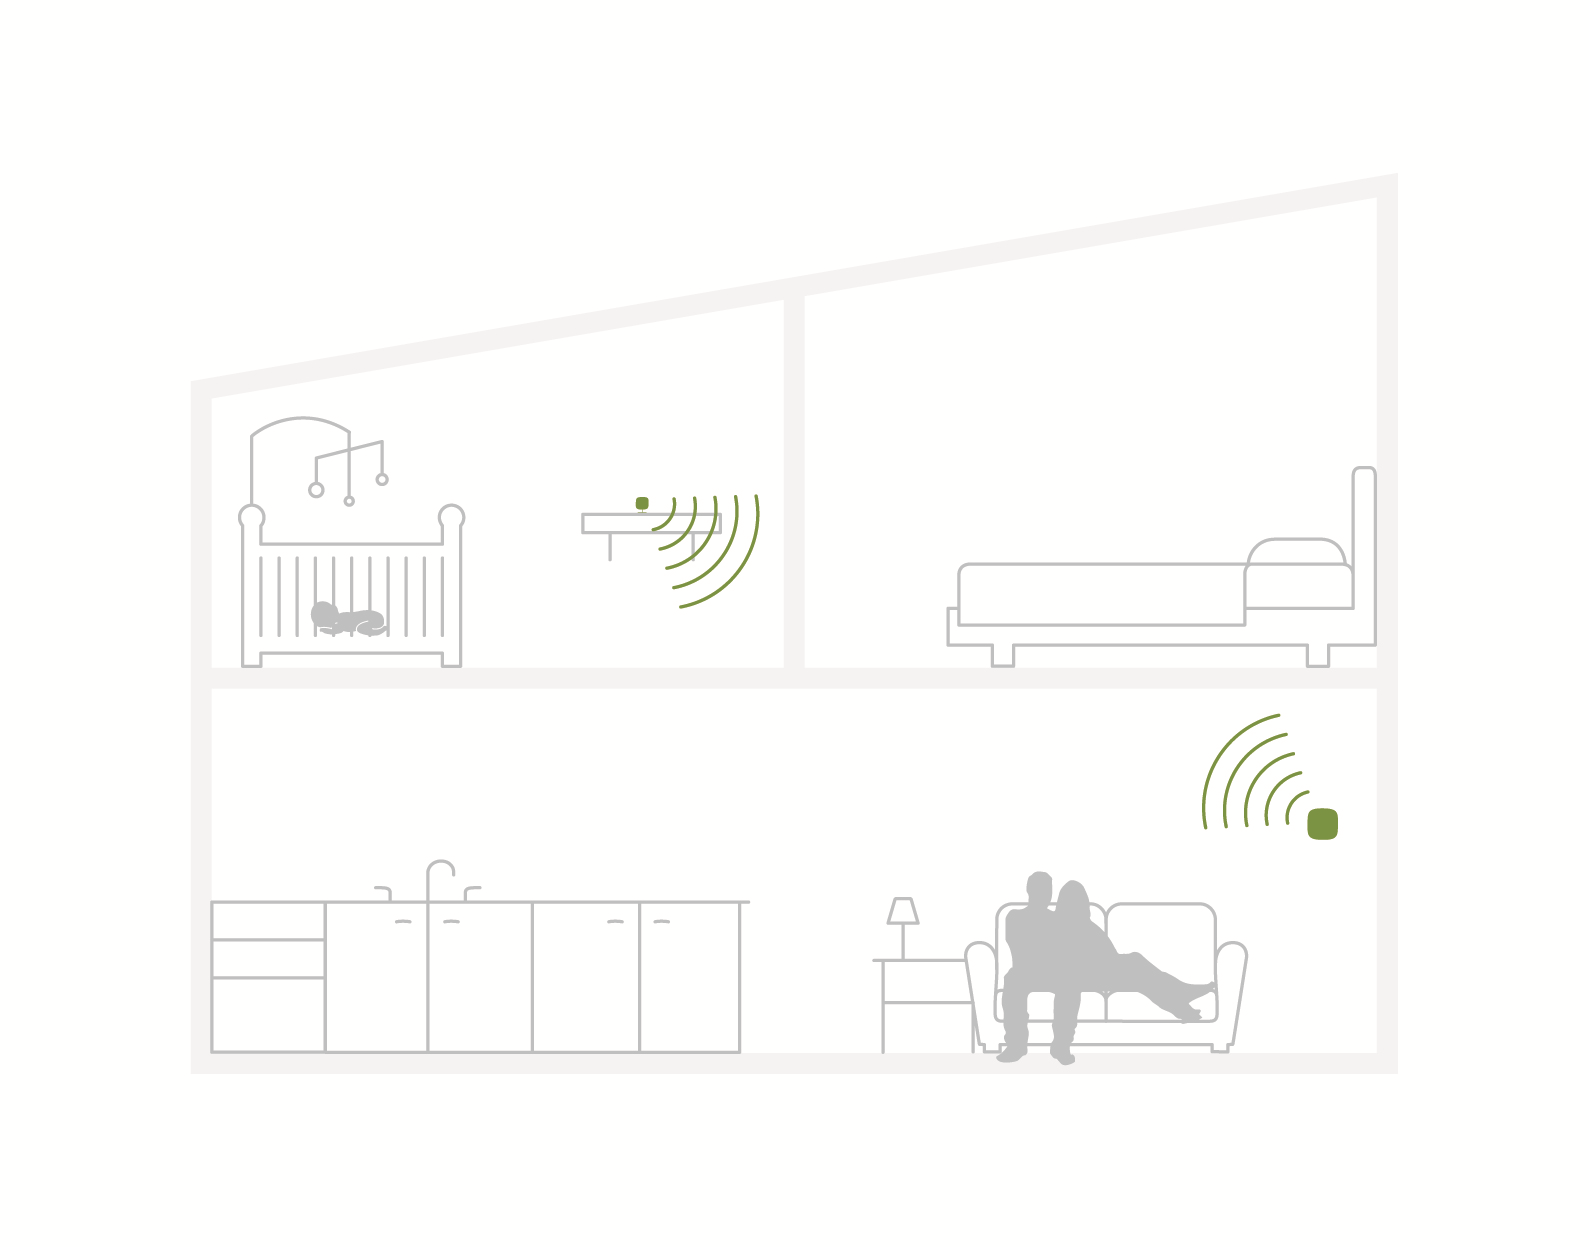 Ecobee room sensor placement